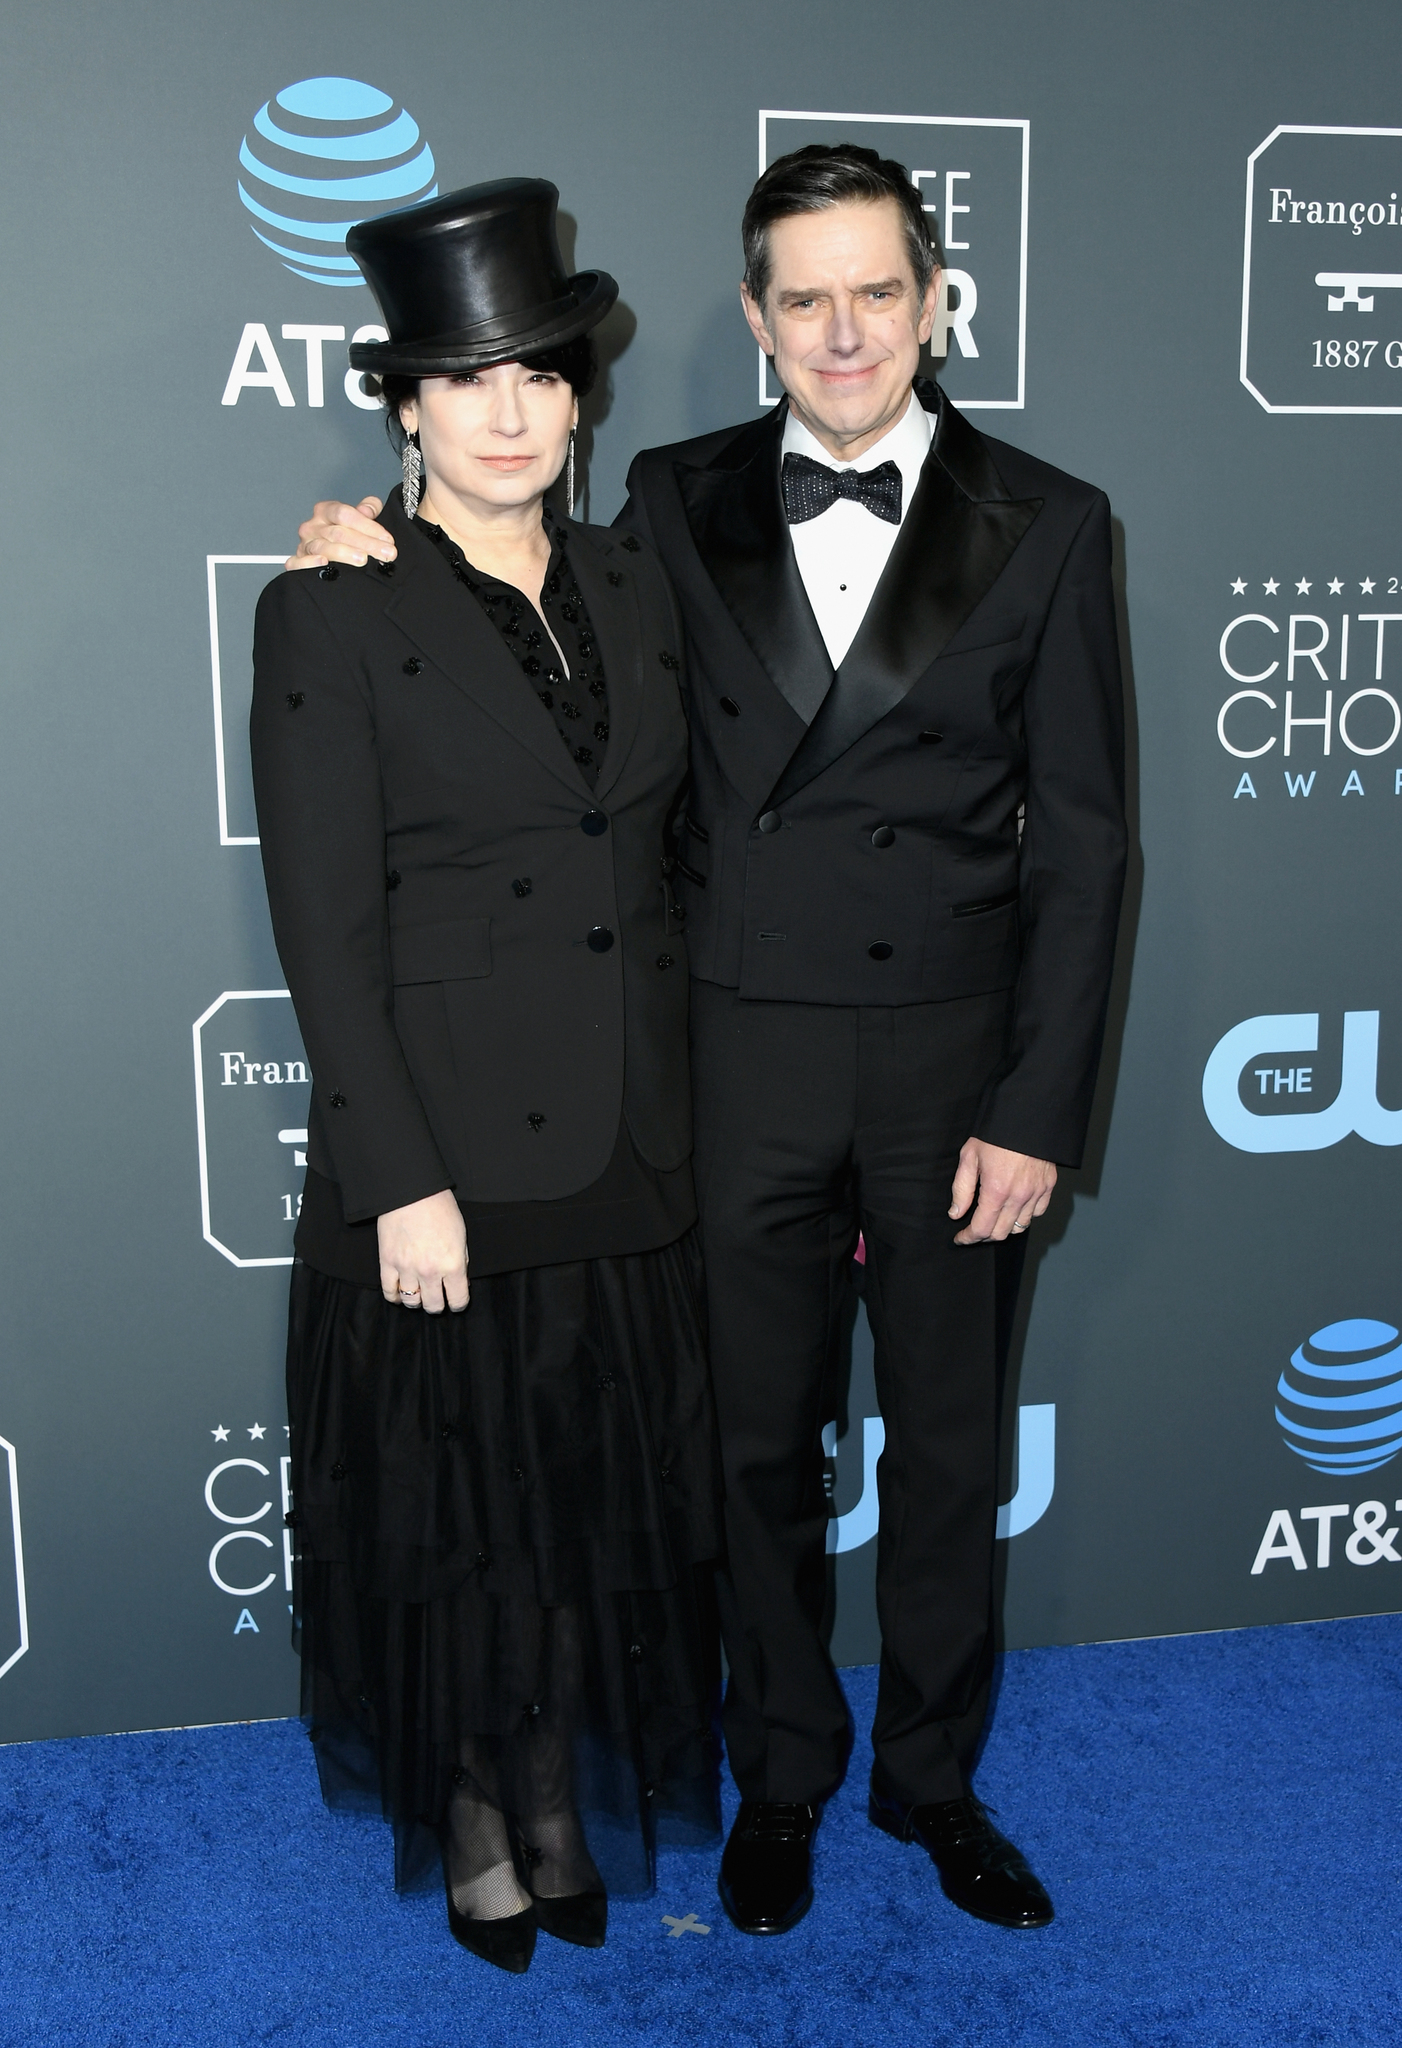 Daniel Palladino and Amy Sherman-Palladino at an event for The 24th Annual Critics' Choice Awards (2019)